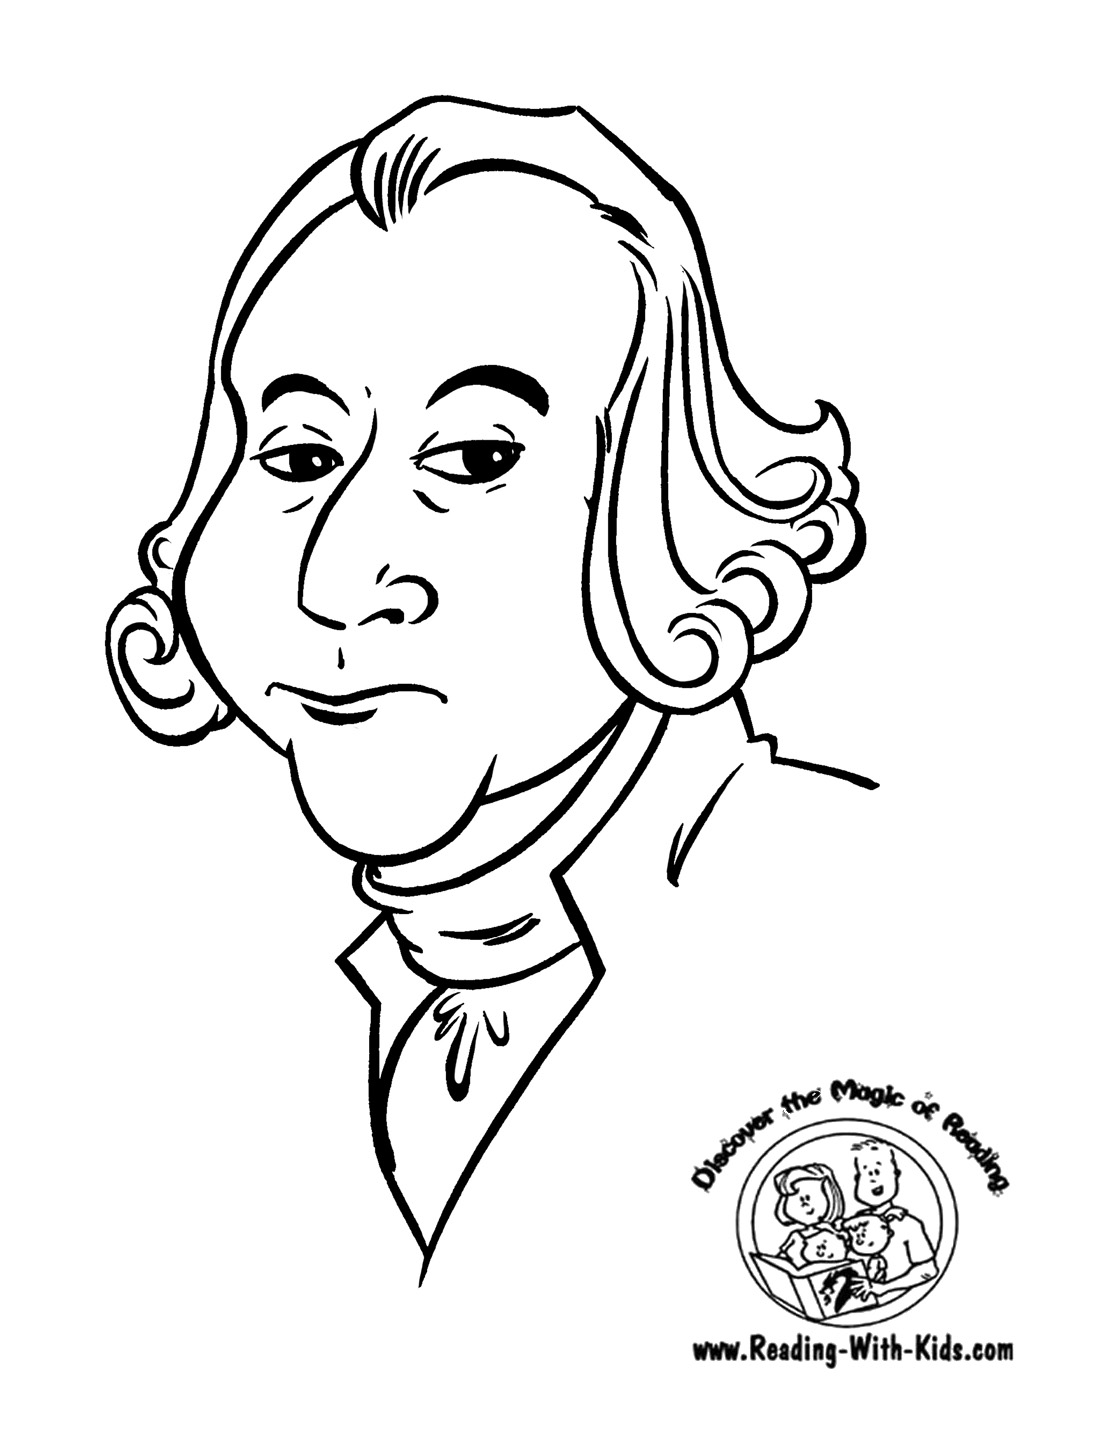 - Presidents Day Free Coloring Pages On Masivy World. George